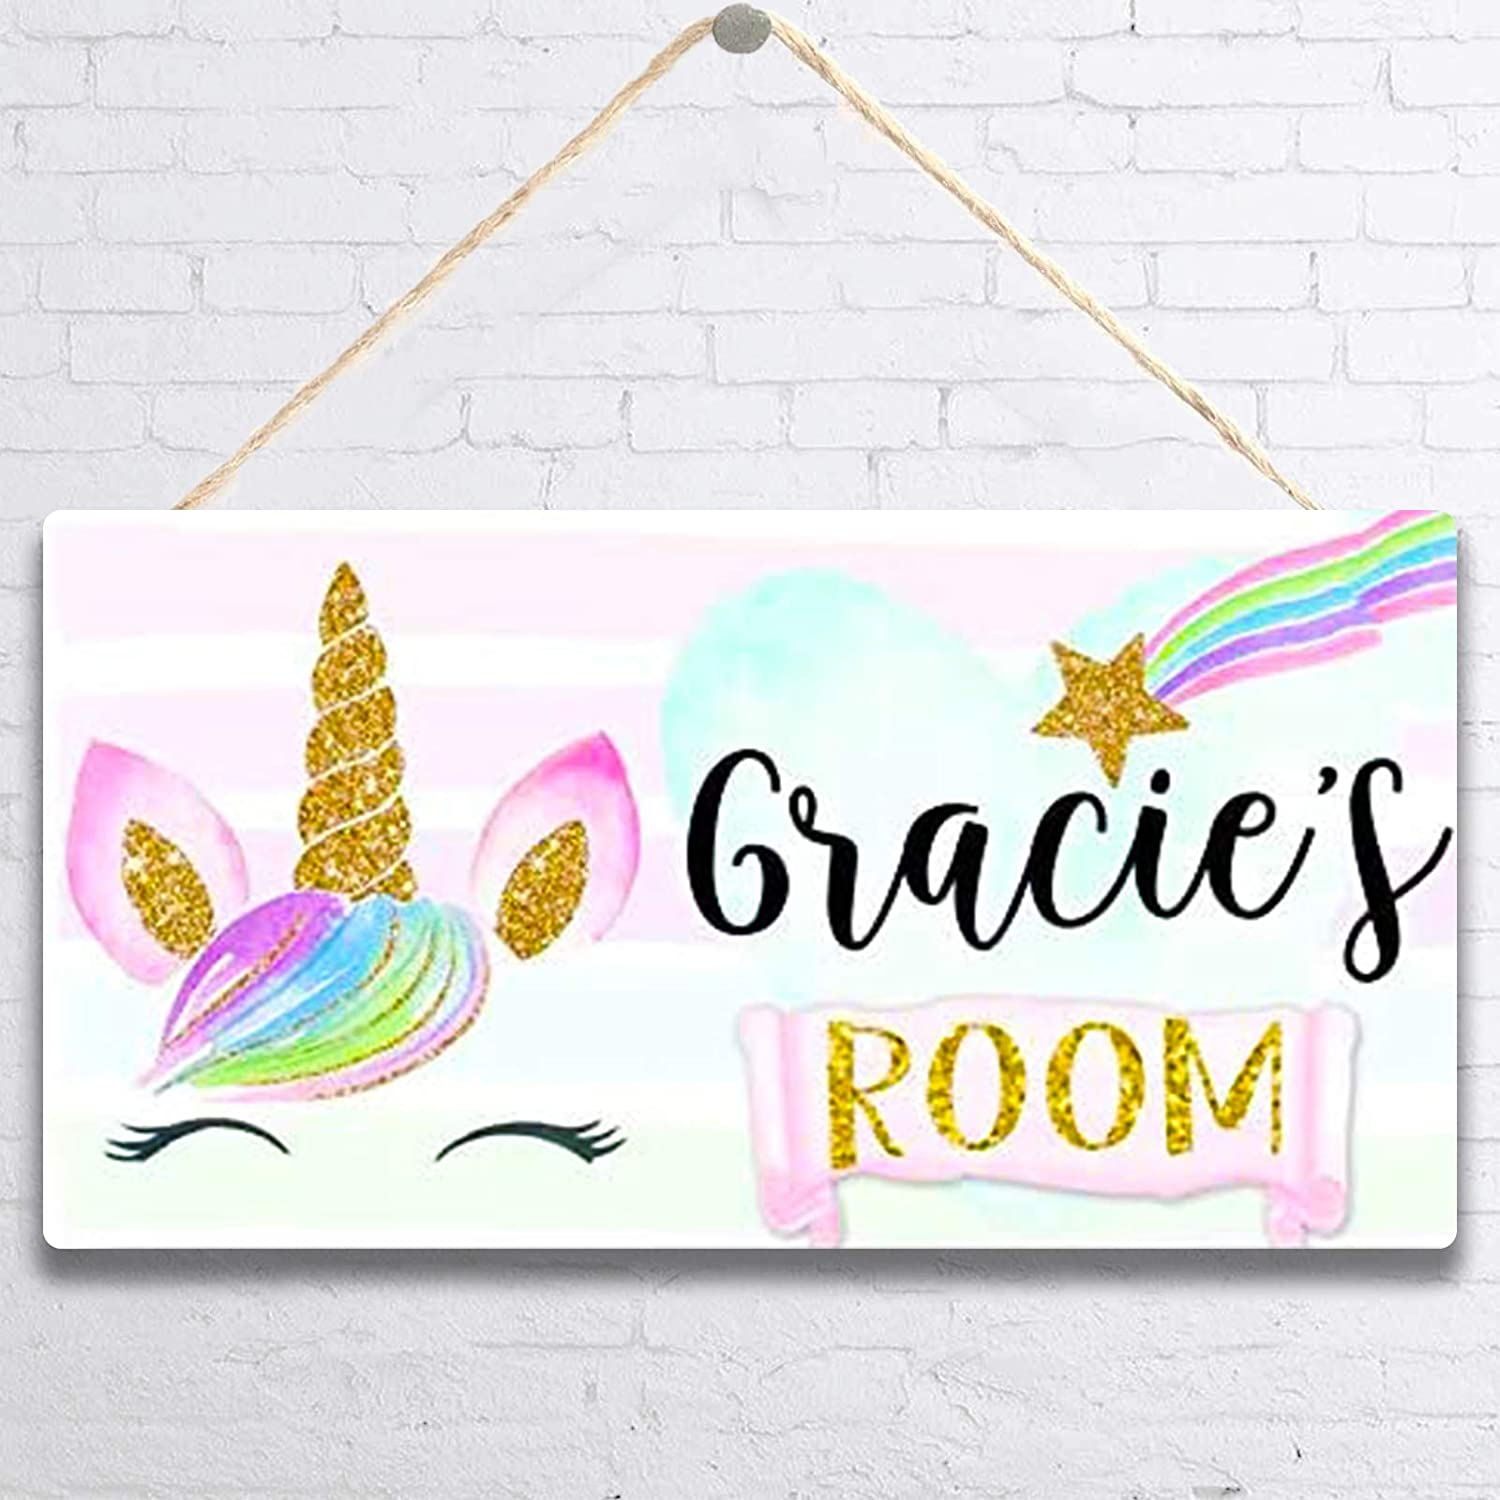 MUPIANLX Personalised Rainbow Unicorn Face Door Sign & Customized Gift for Baby-Decor for Girls, Pink Gold Star Bedroom Nursery Wall Wooden Sign Décor -5x10 inches